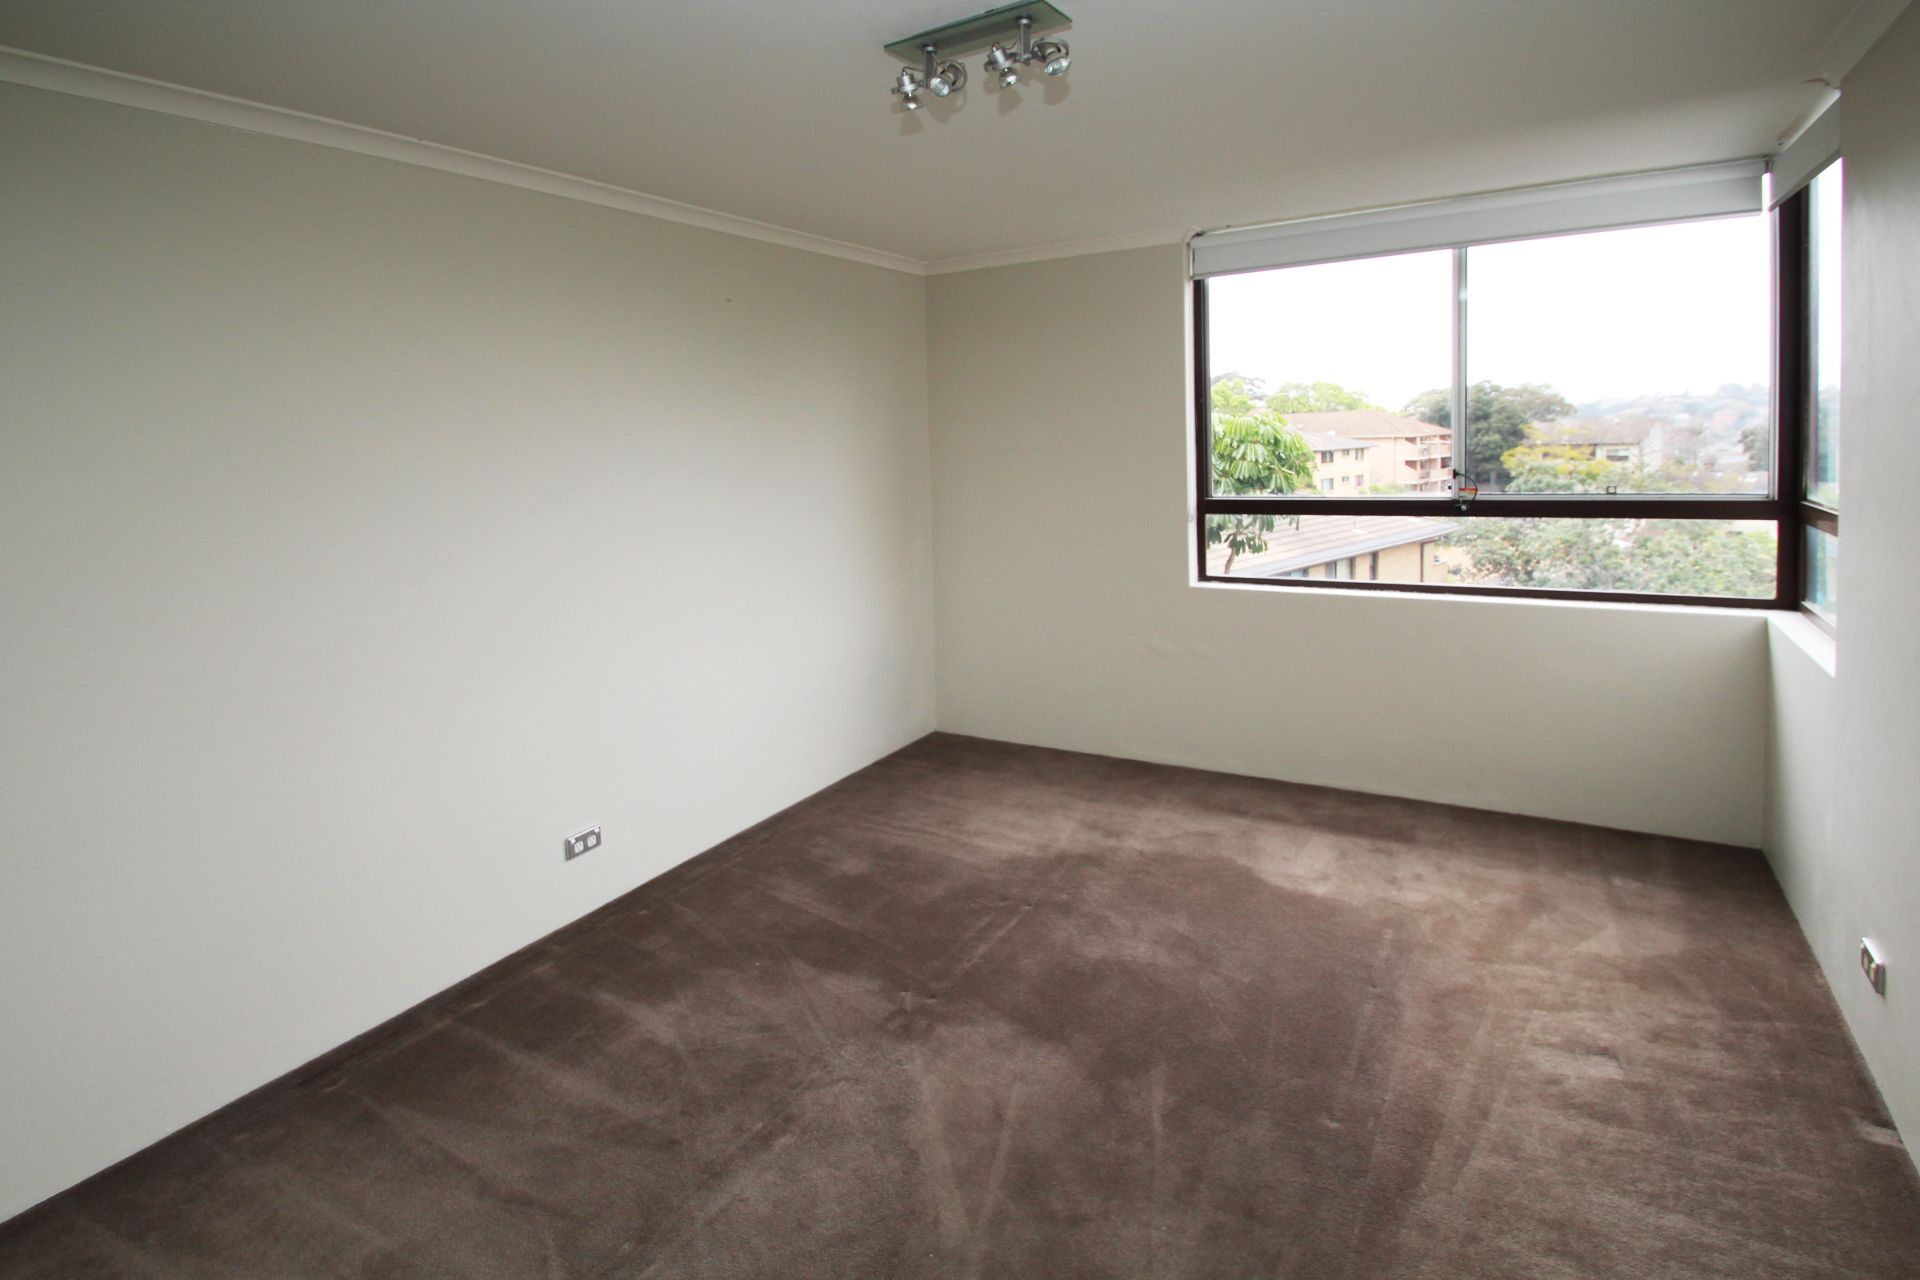 BRIGHT, MODERN & SPACIOUS 2 BEDROOM APARTMENT WITH TREETOP VIEWS!